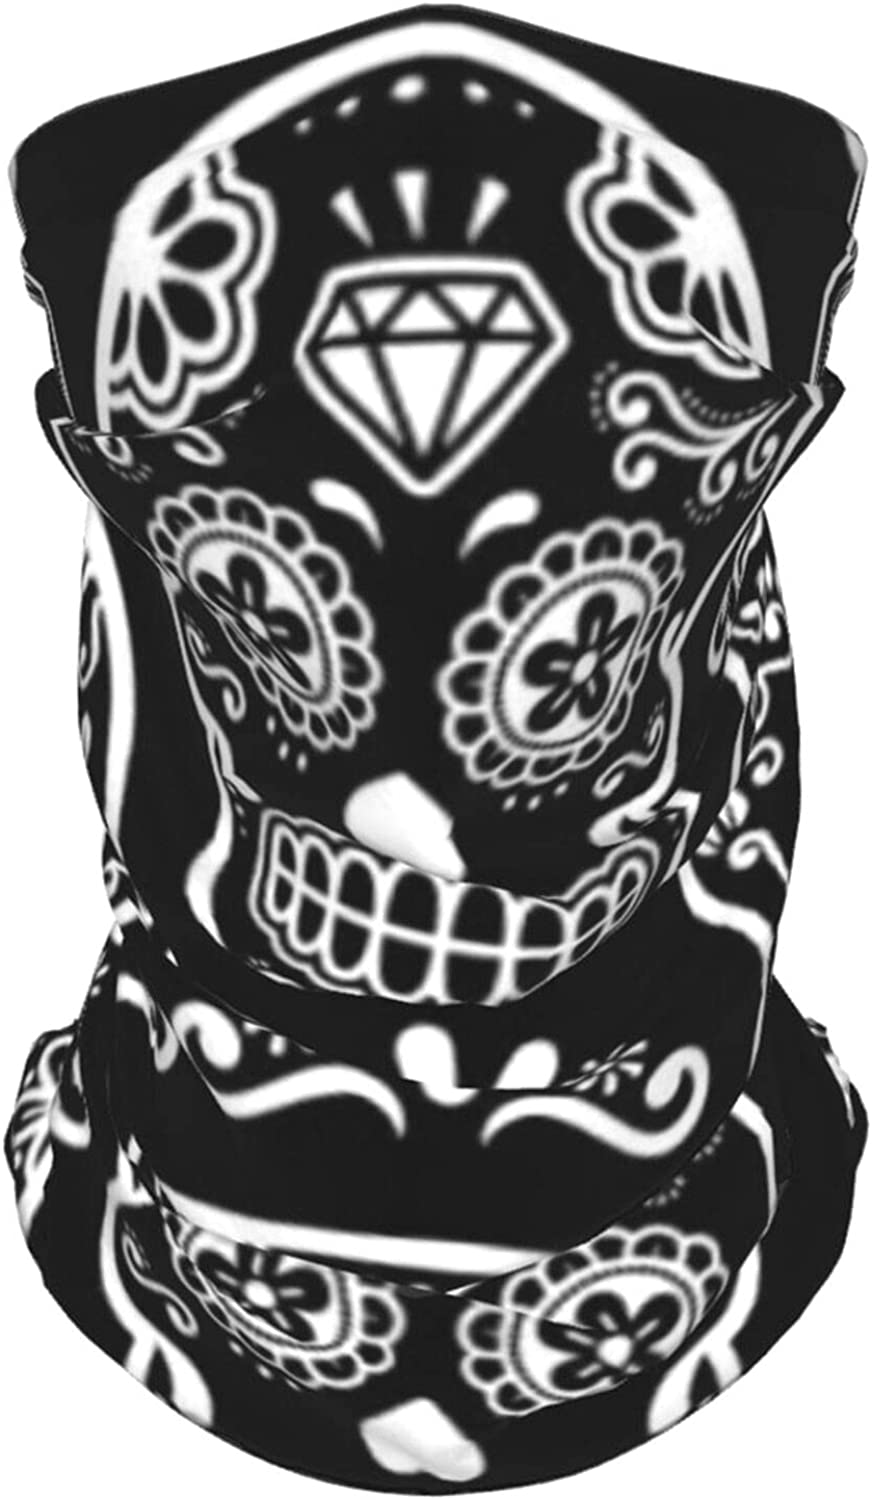 Mexican Sugar Skull Summer Ice Silk Breathable Face Mask Neck Gaiter Scarf Bandanas for Fishing,Hiking,Running,Motorcycle and Daily Wear